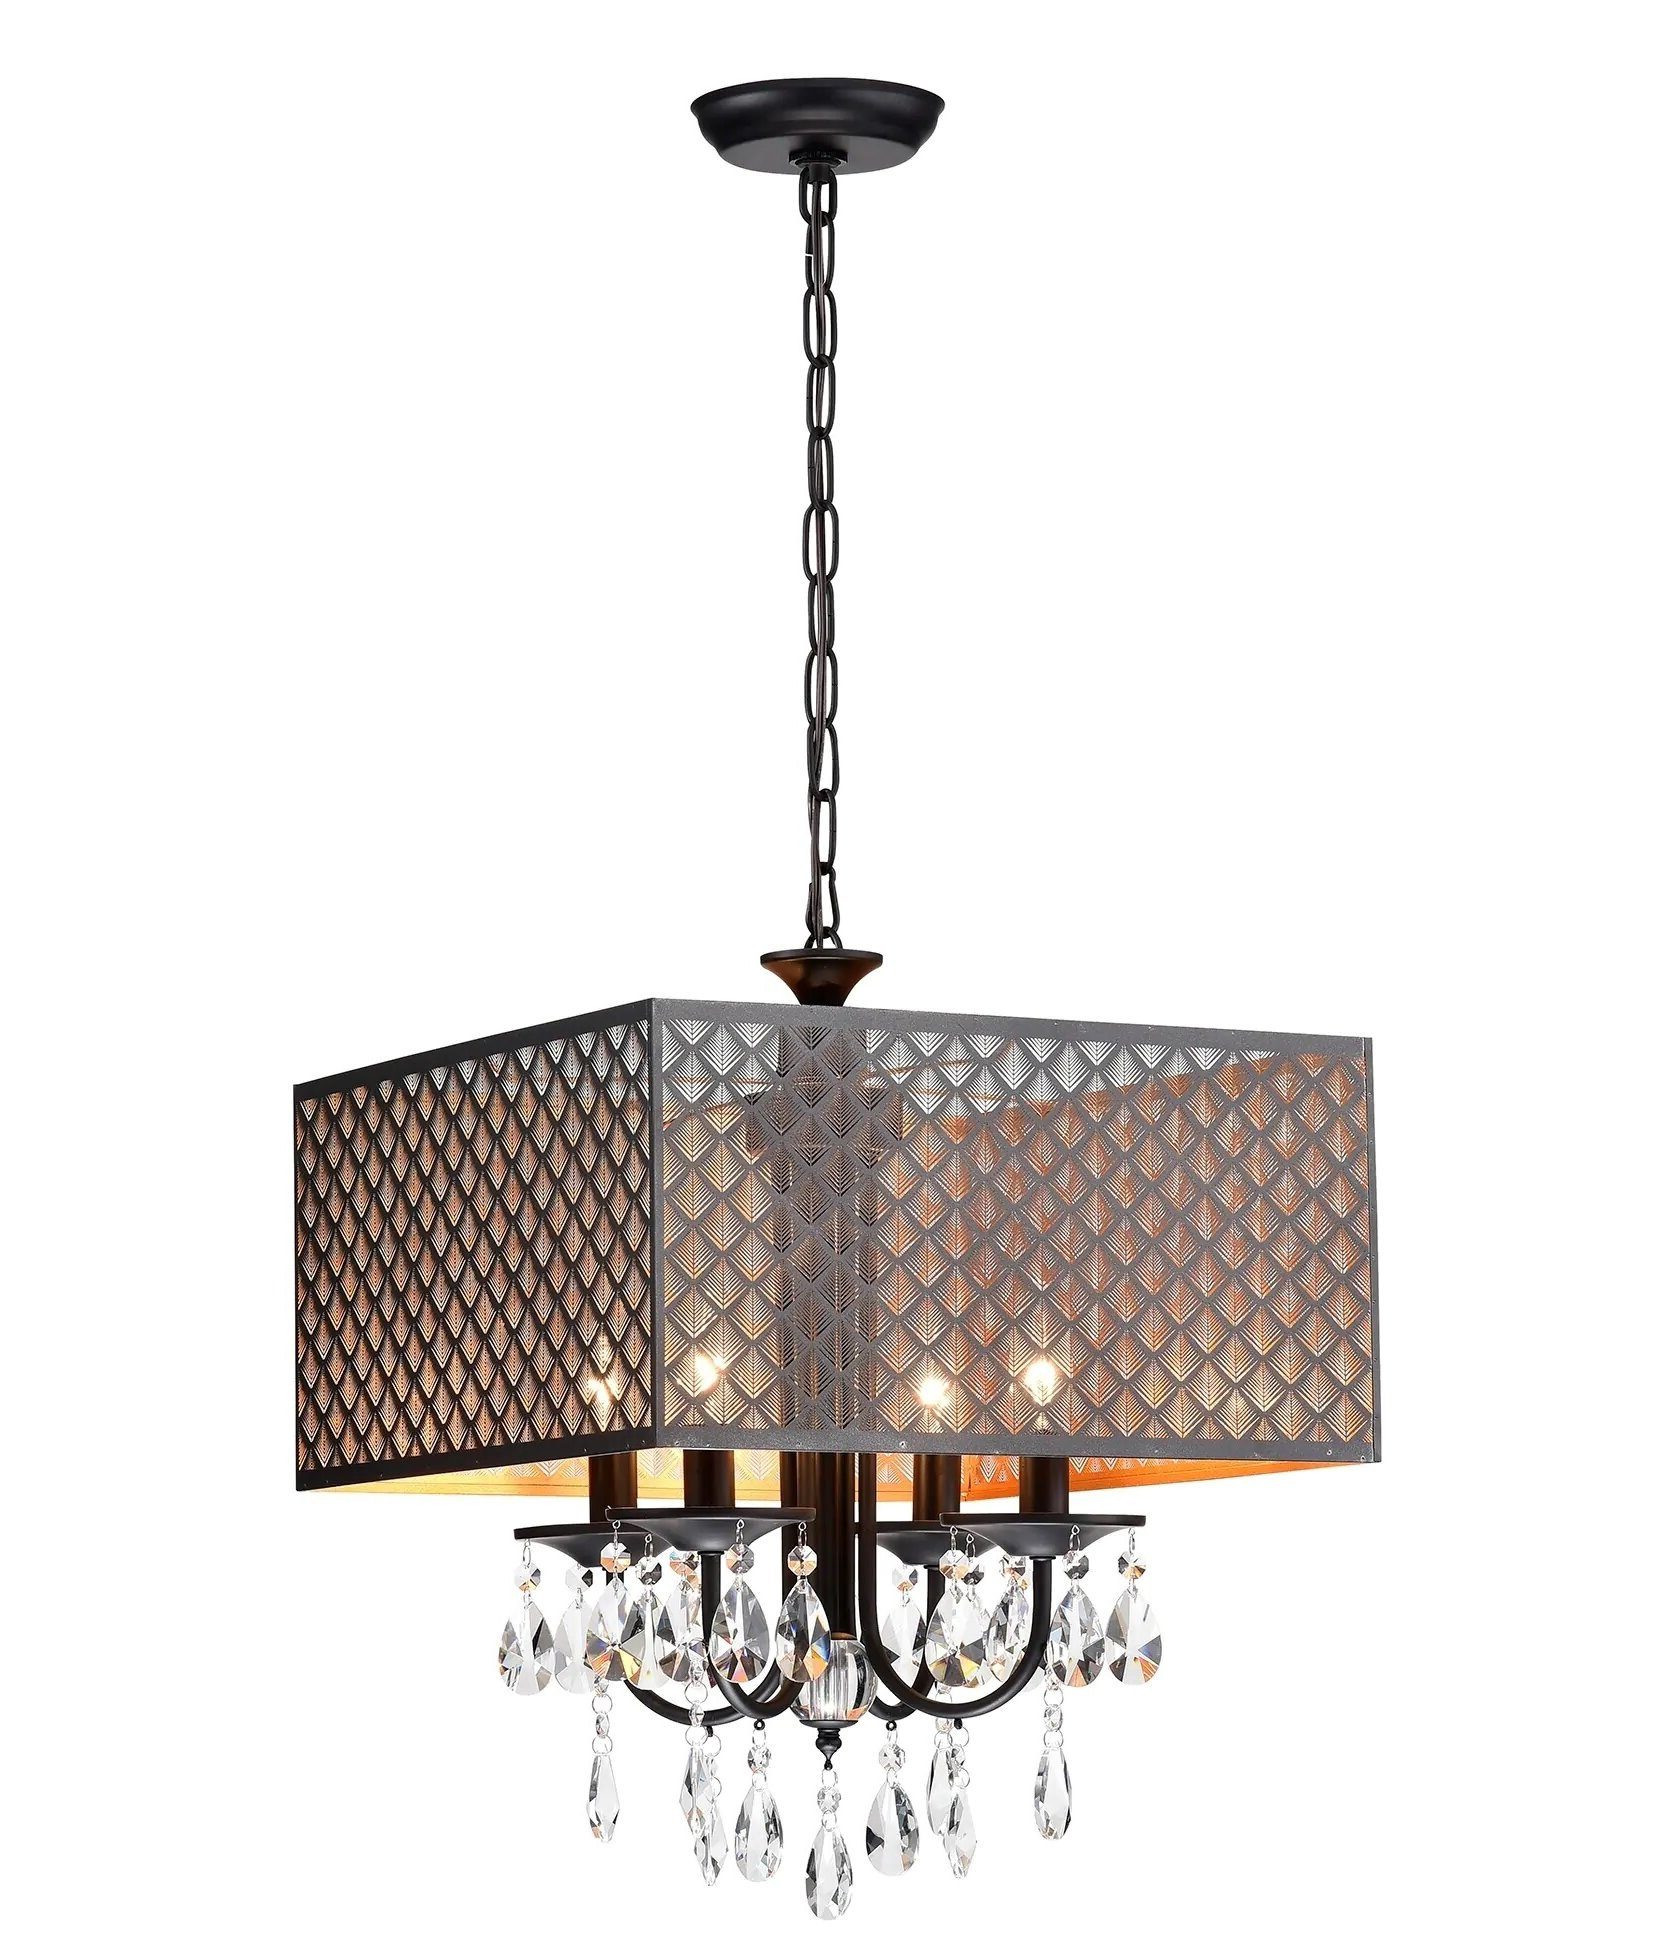 2020 Mathers 4 Light Rectangle Chandelier Within Jill 4 Light Drum Chandeliers (Gallery 8 of 20)